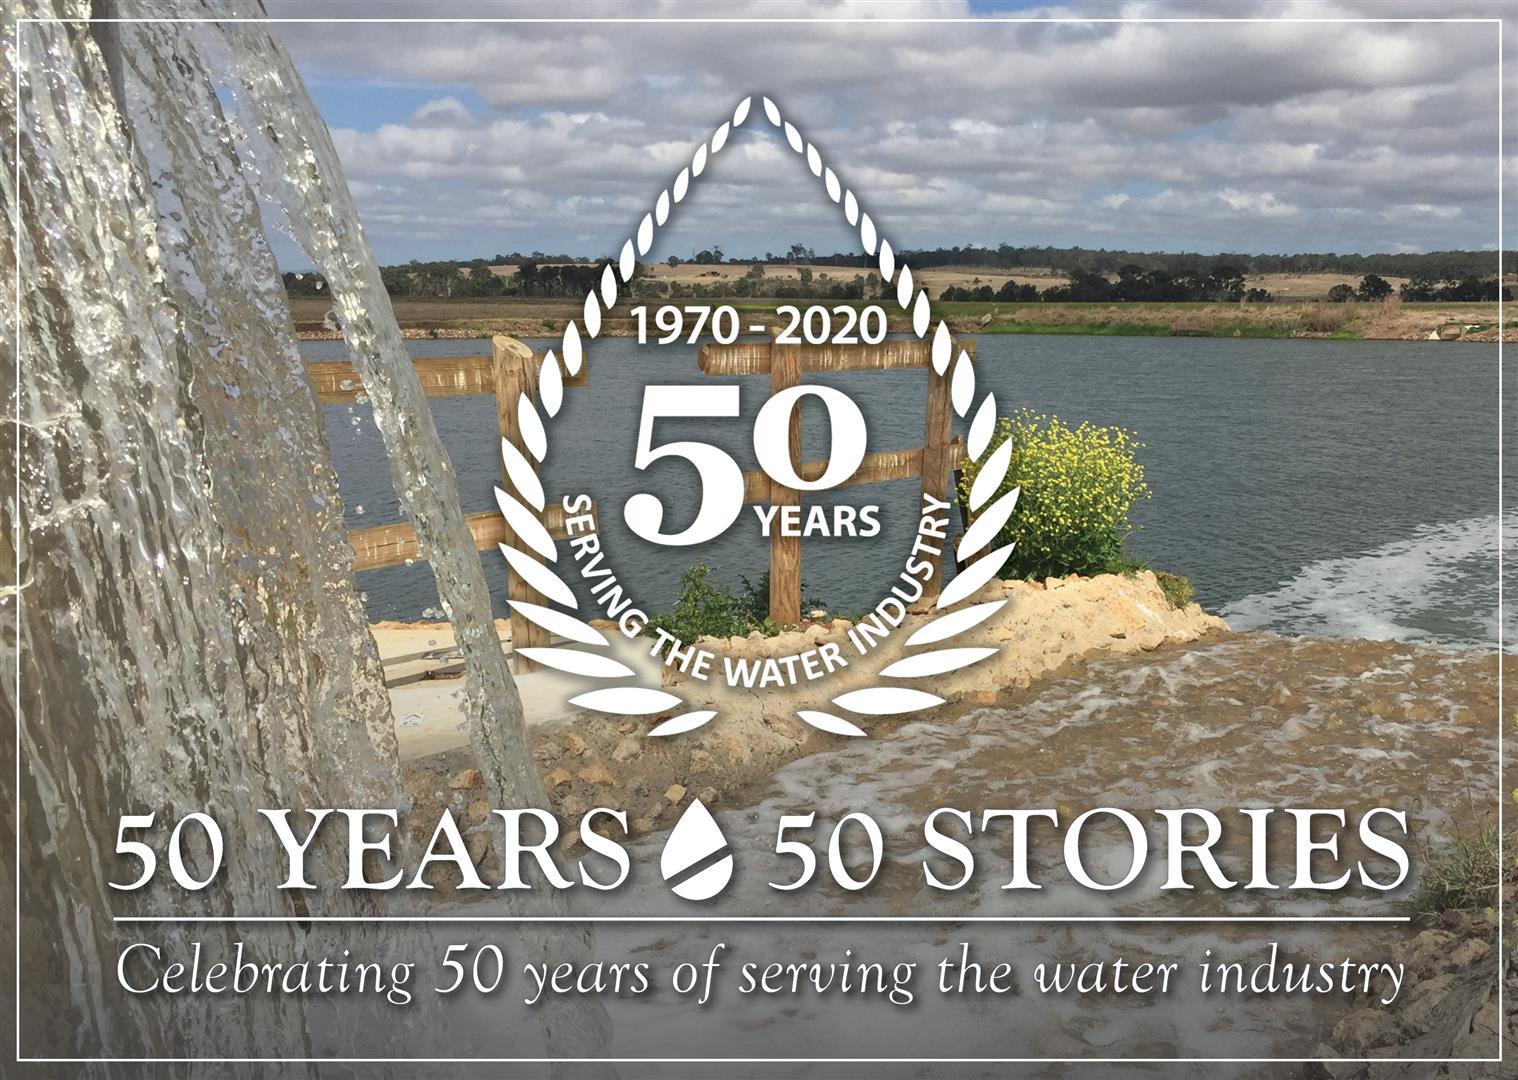 50 Years - 50 Stories: Nereda® at Kingaroy WWTP - An award-winning first for Australia